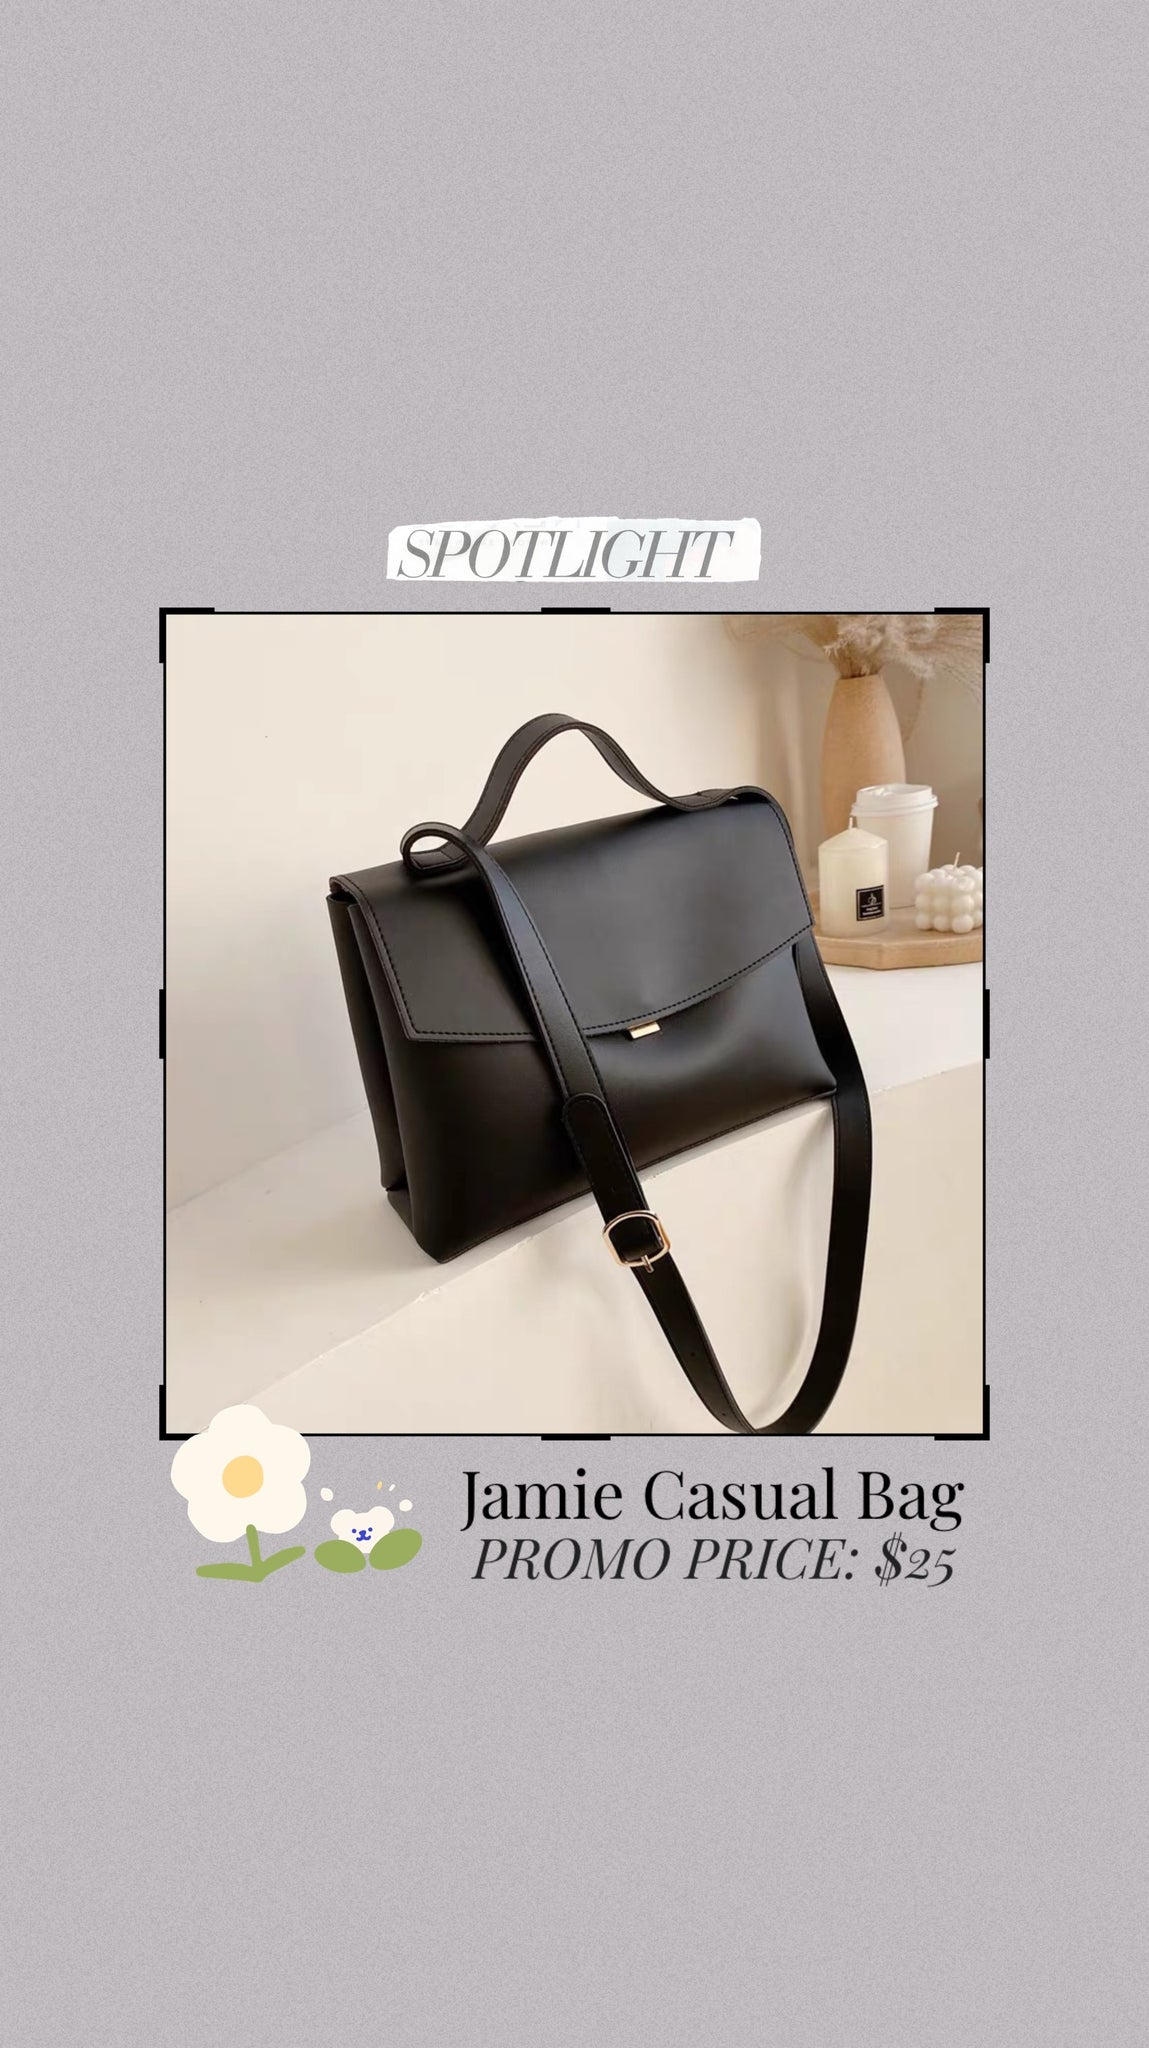 Jamie Casual Bag